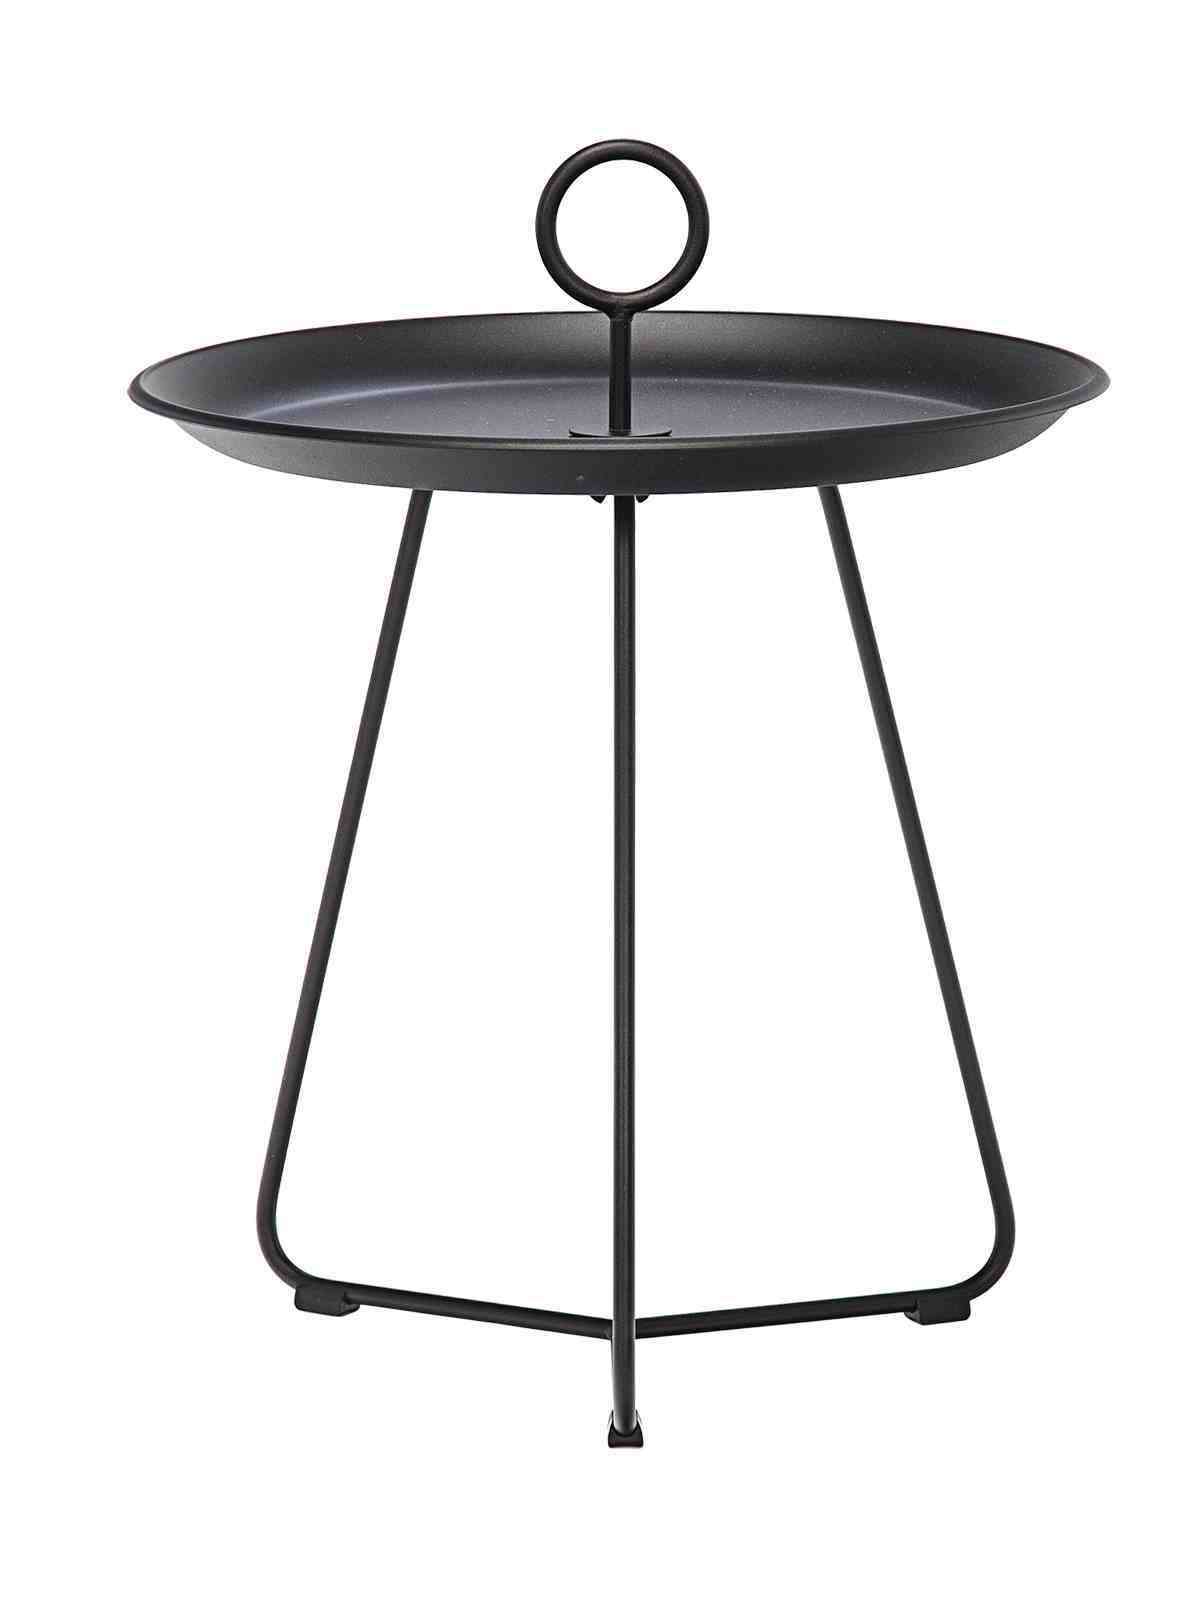 eyelet outdoor side table small houe beistelltisch klein schwarz accent black glass coffee with metal legs grey bedside lights decorative chests and cabinets antique dining round